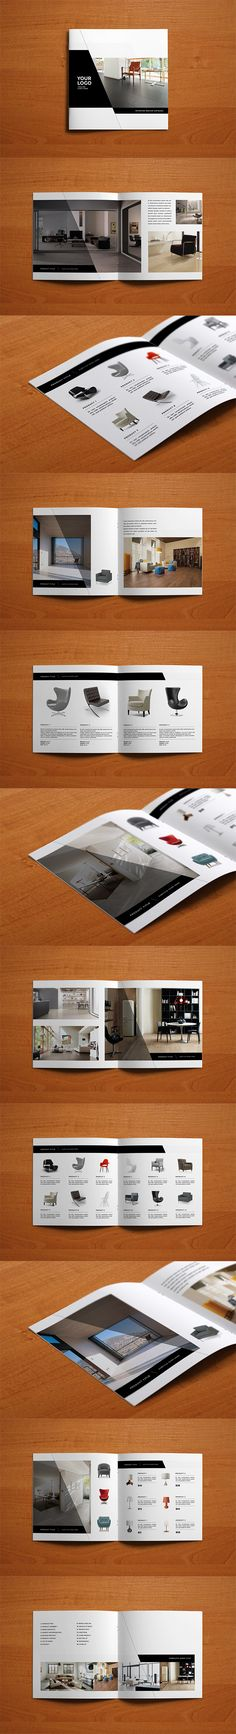 Minimal Interior Design Catalog on Behance